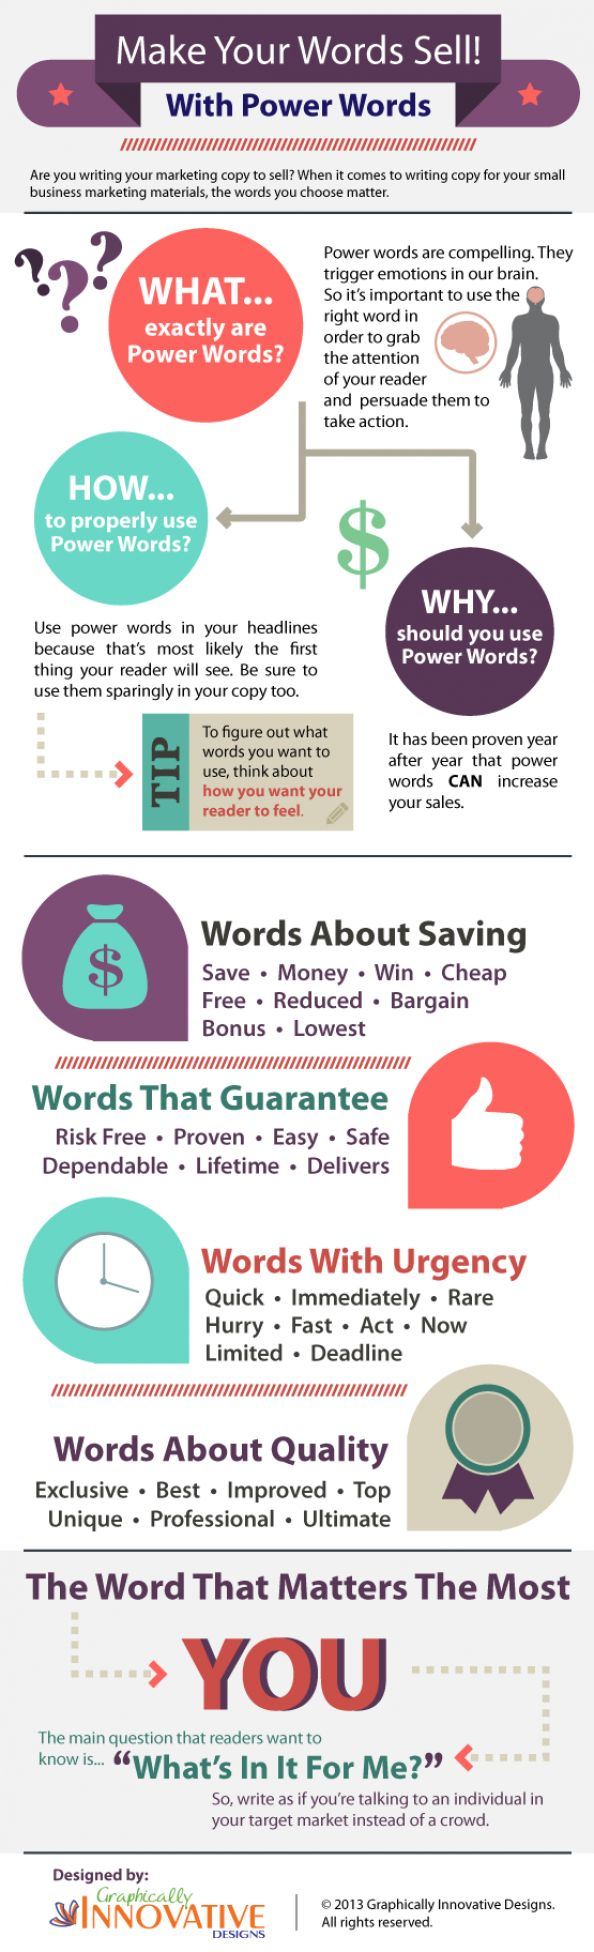 Make Your Words Sell with Power Words